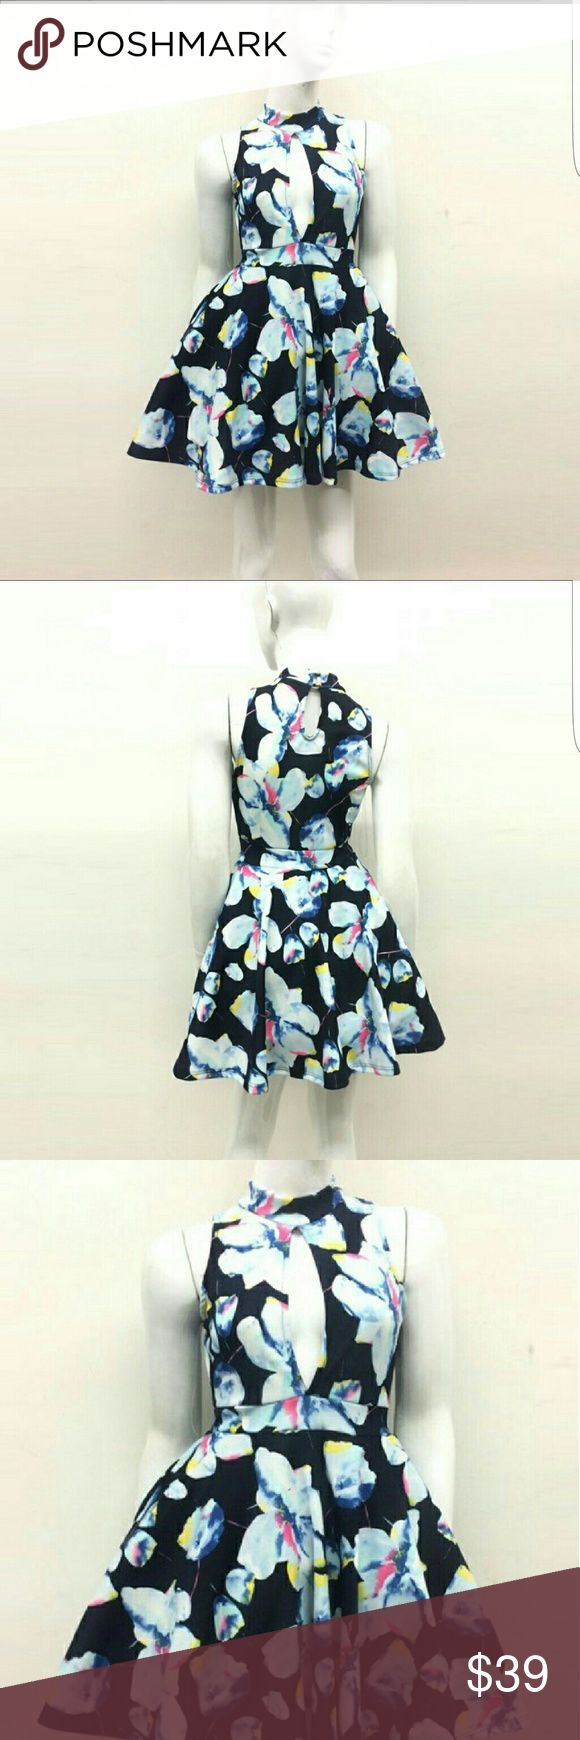 Navy floral high neck cut out skater dress Gorgeous navy skater dress with floral design, high neck and cutouts at bust line. Perfect for spring/summer events or just a nice dinner. Dresses